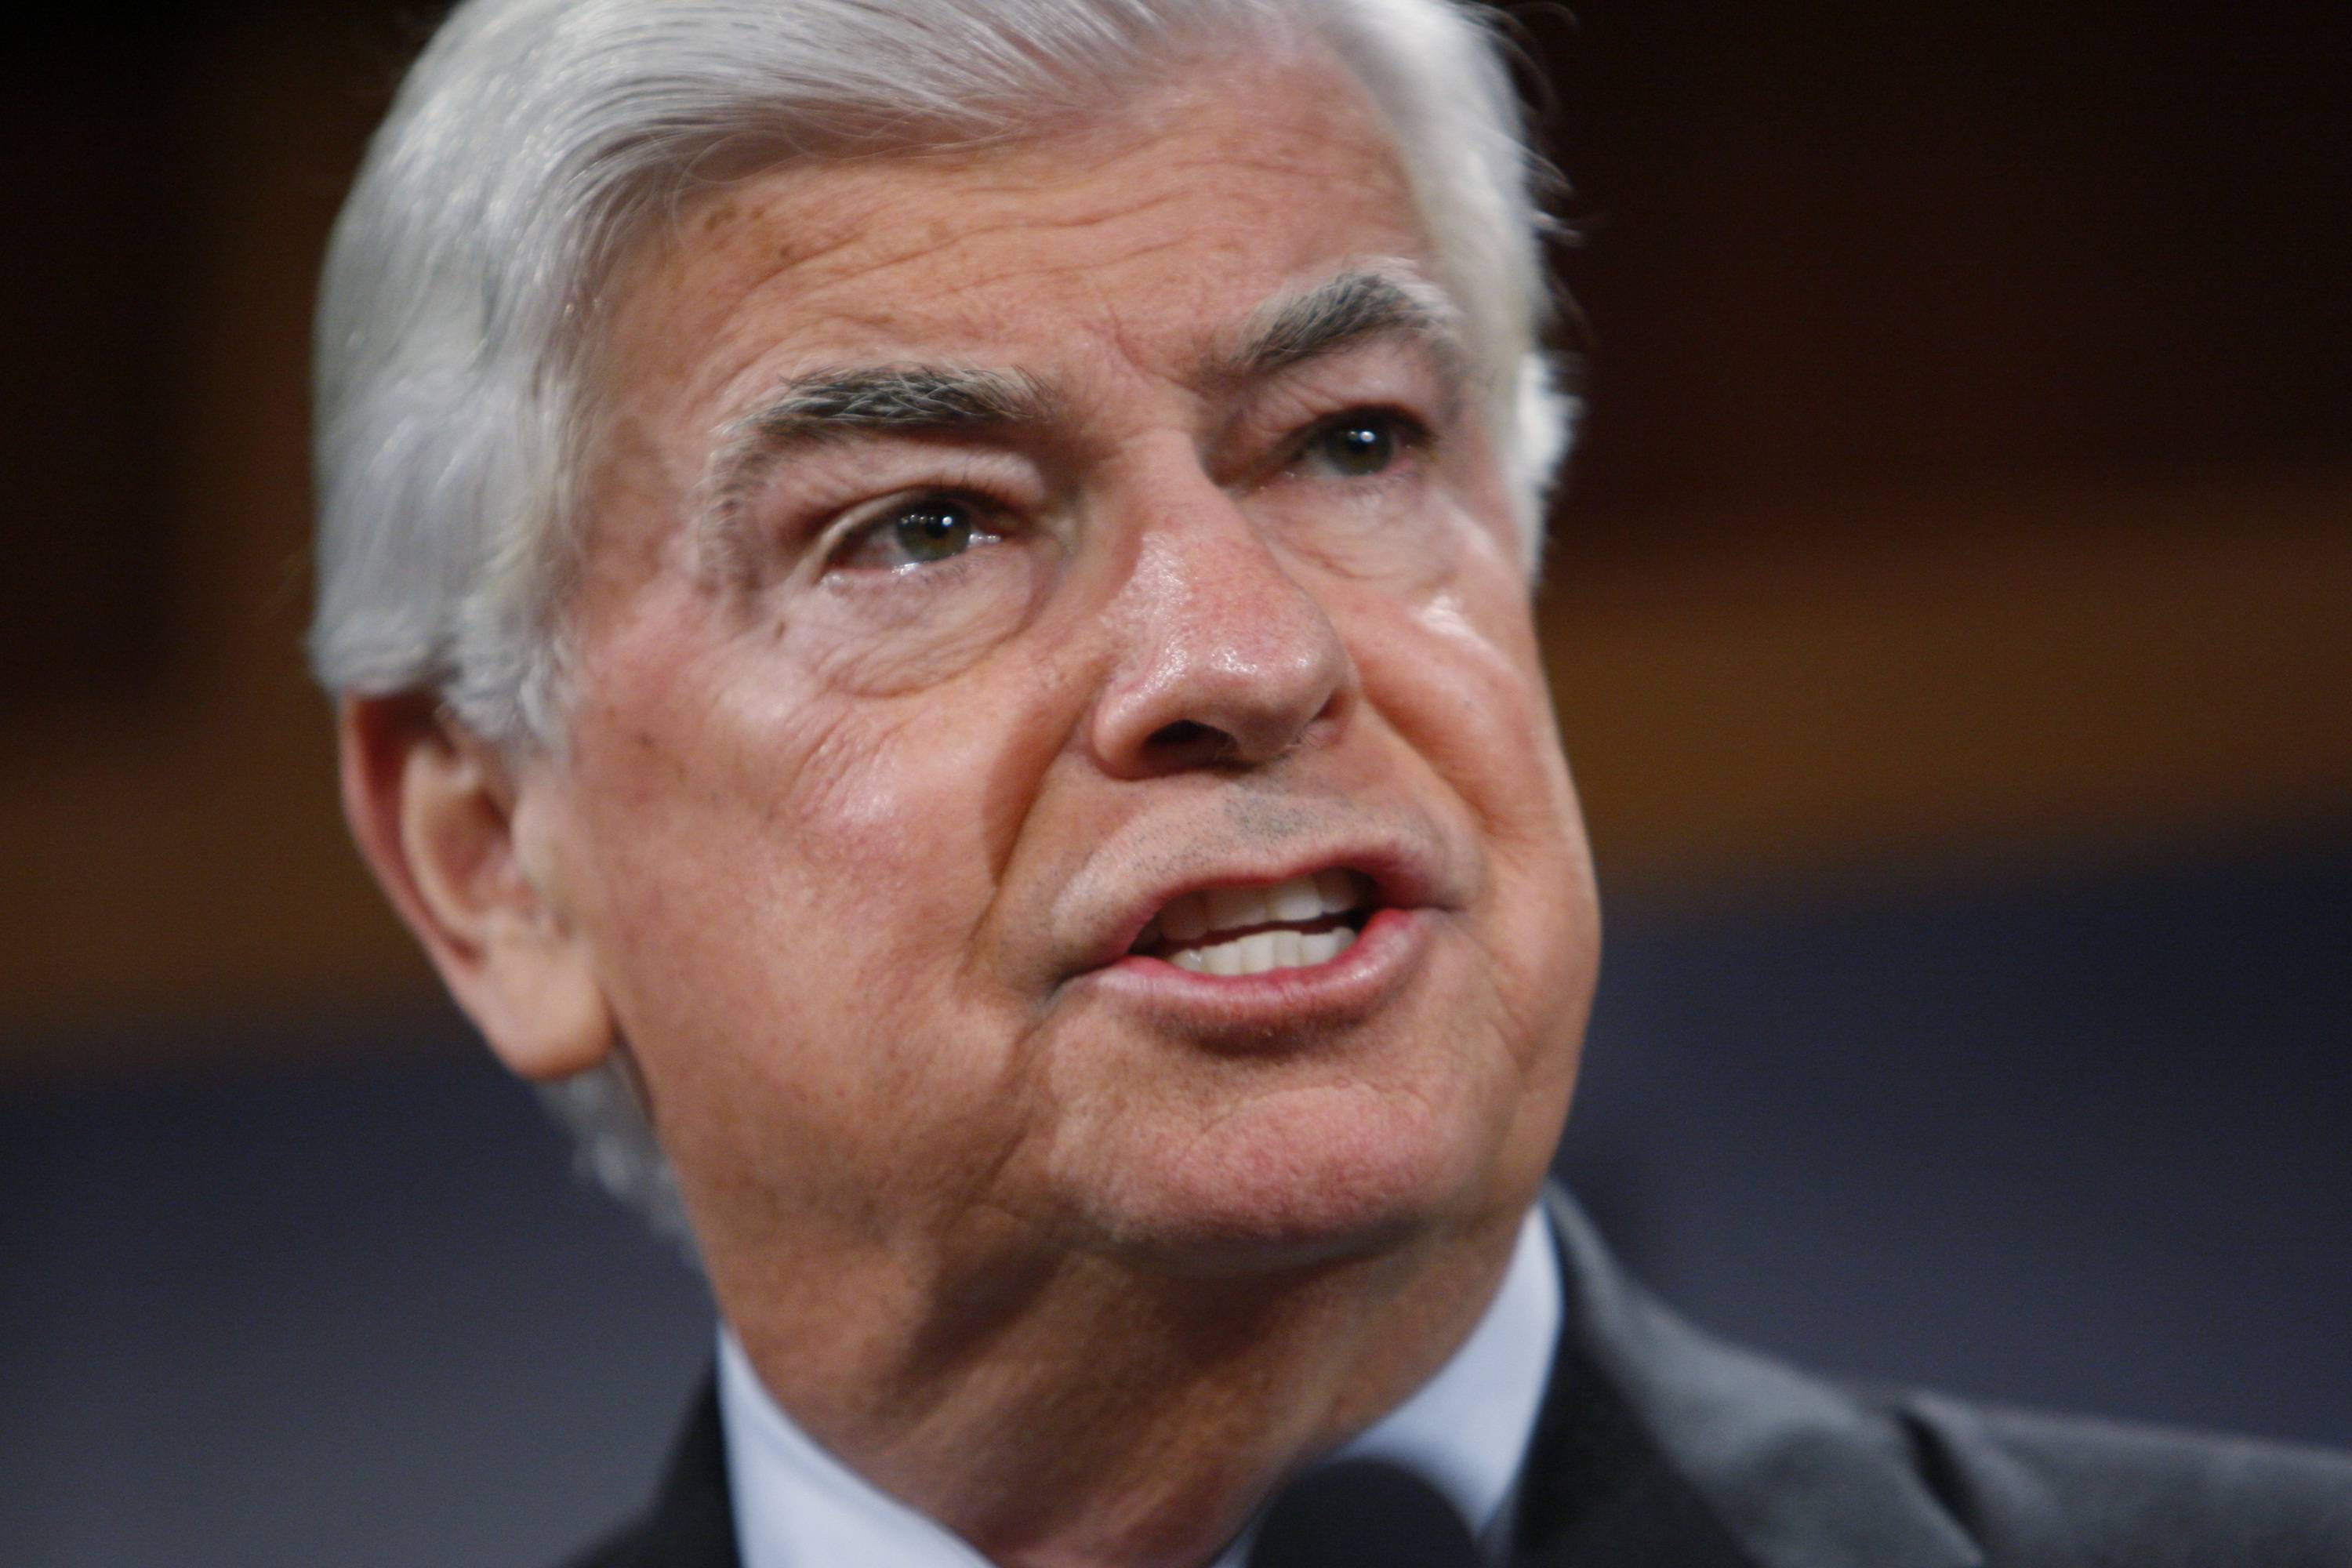 Sen. Christopher Dodd, the chairman of the Senate Banking Committee, said the bill he intends to unveil Monday is an attempt at consensus that incorporates Democratic and Republican ideas, even though no Republicans have lent their support.